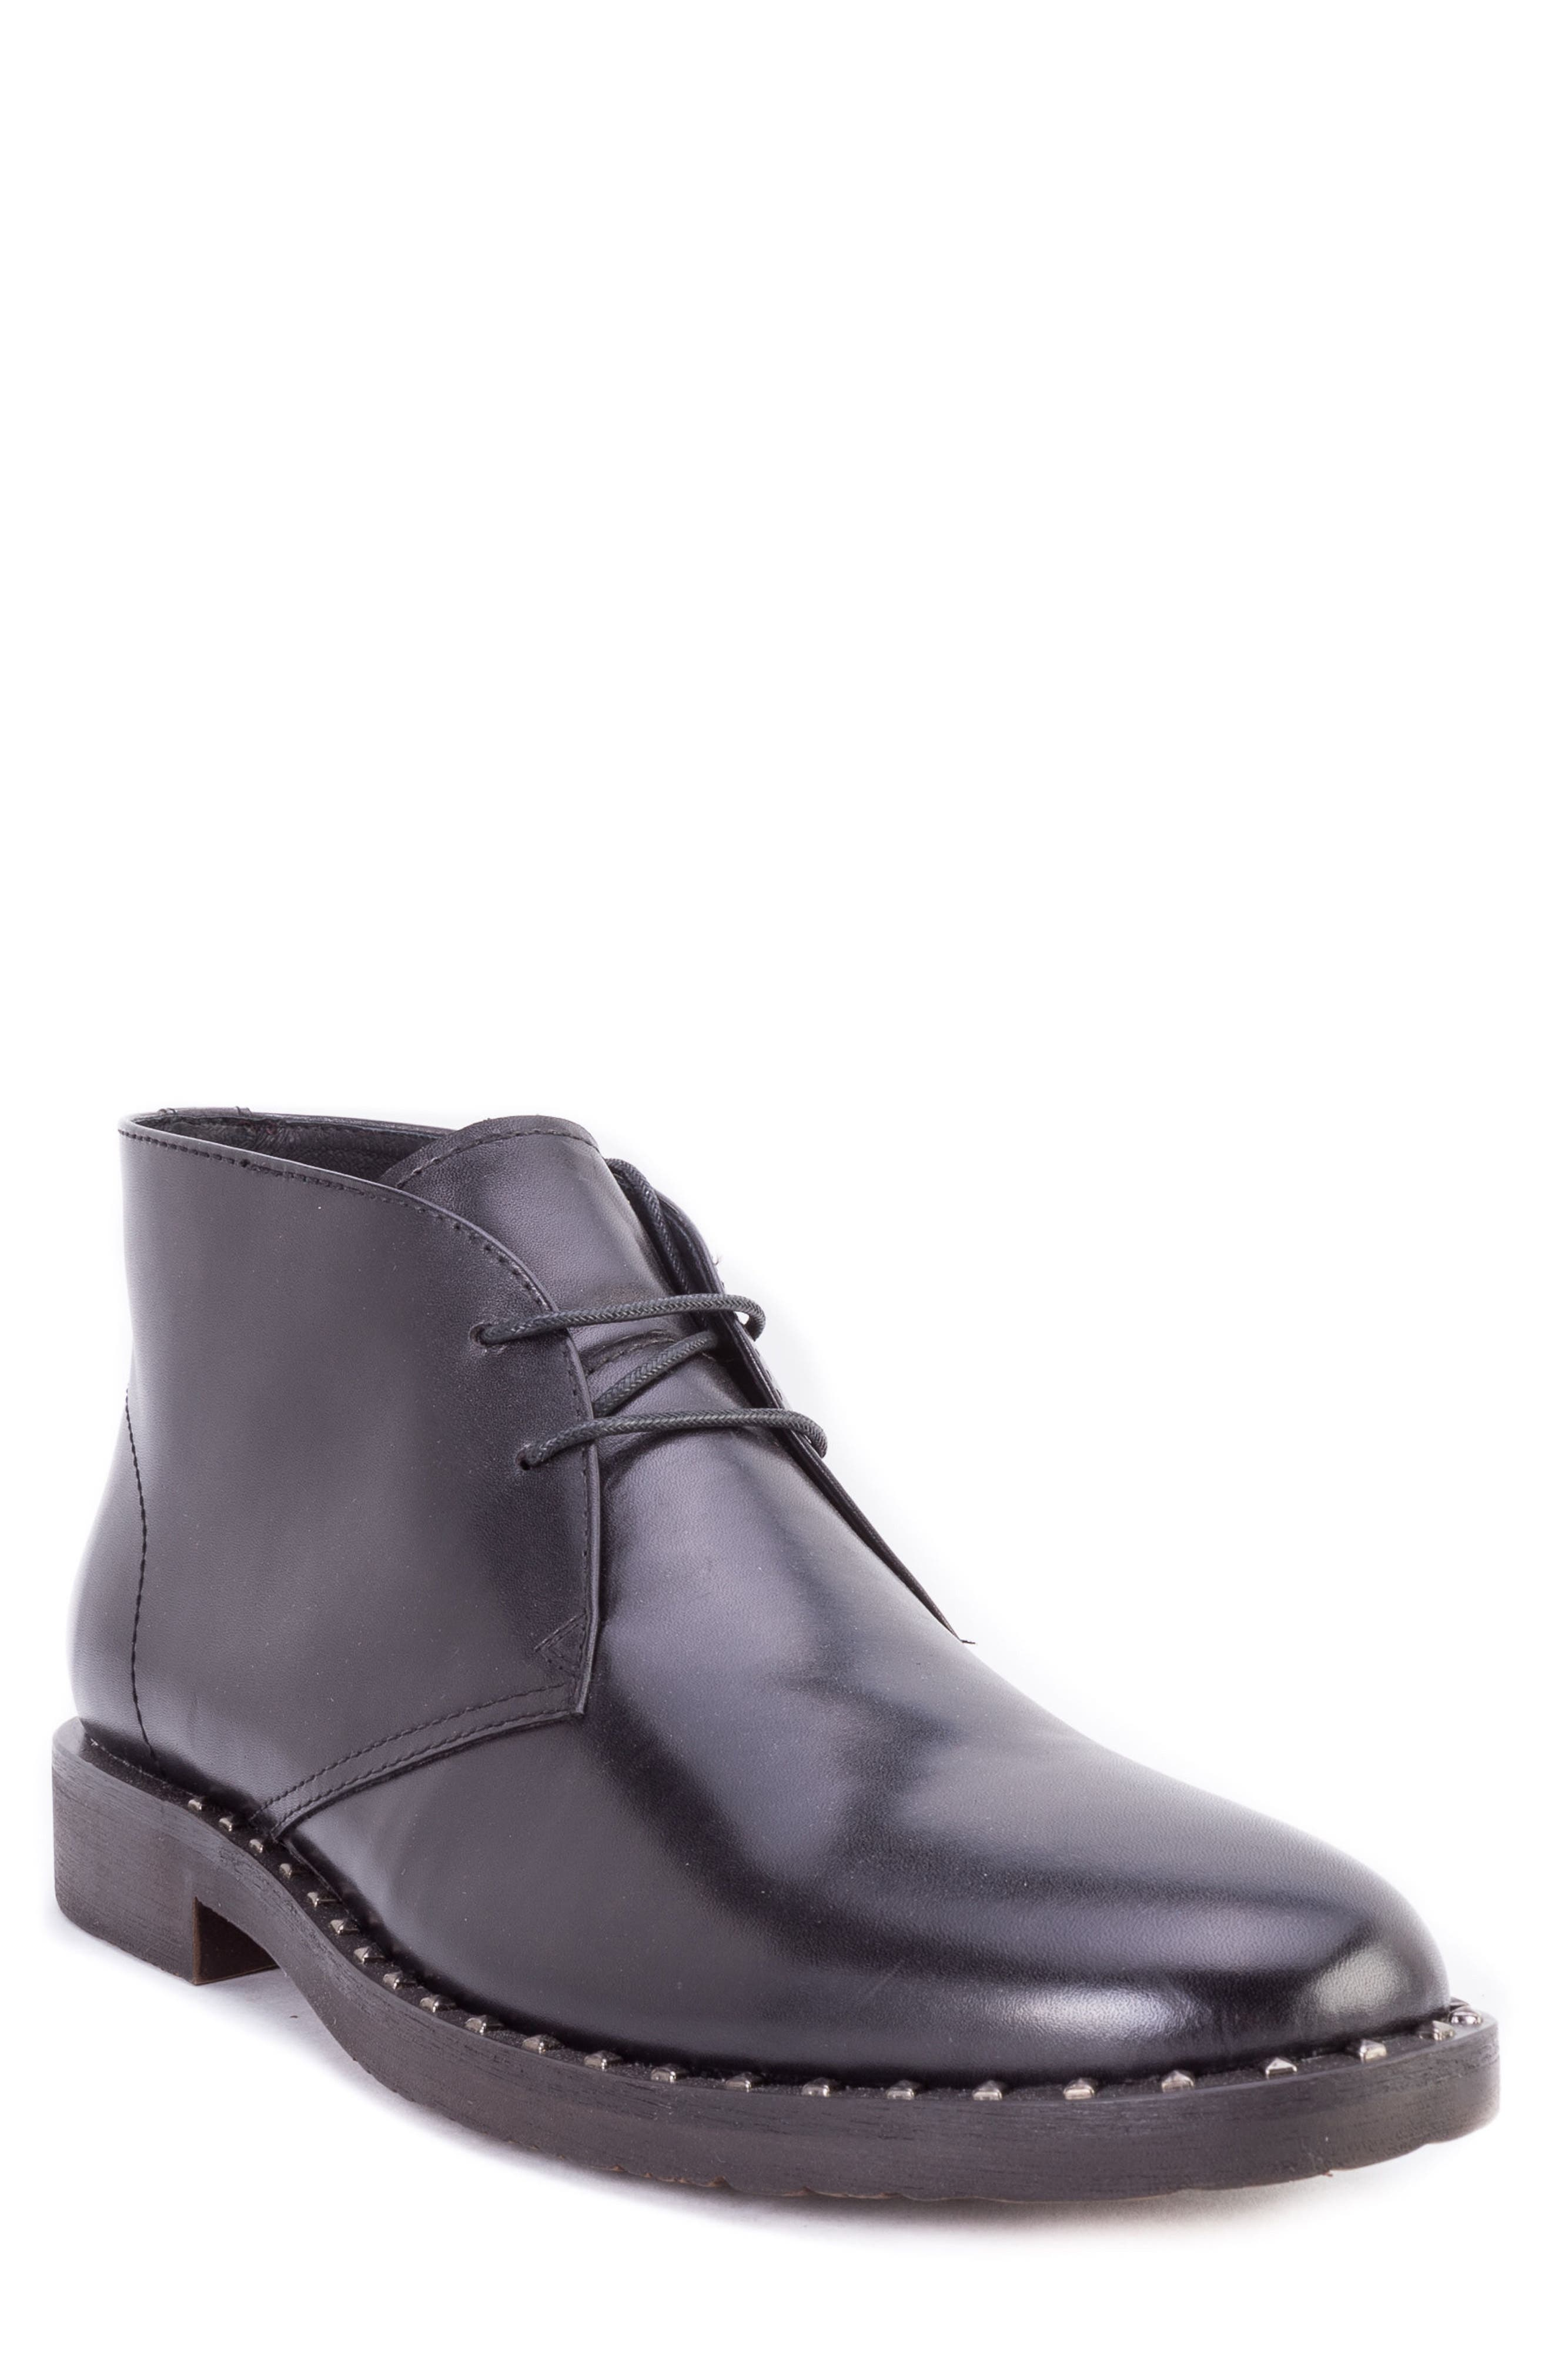 Norrie Studded Chukka Boot,                         Main,                         color, BLACK LEATHER